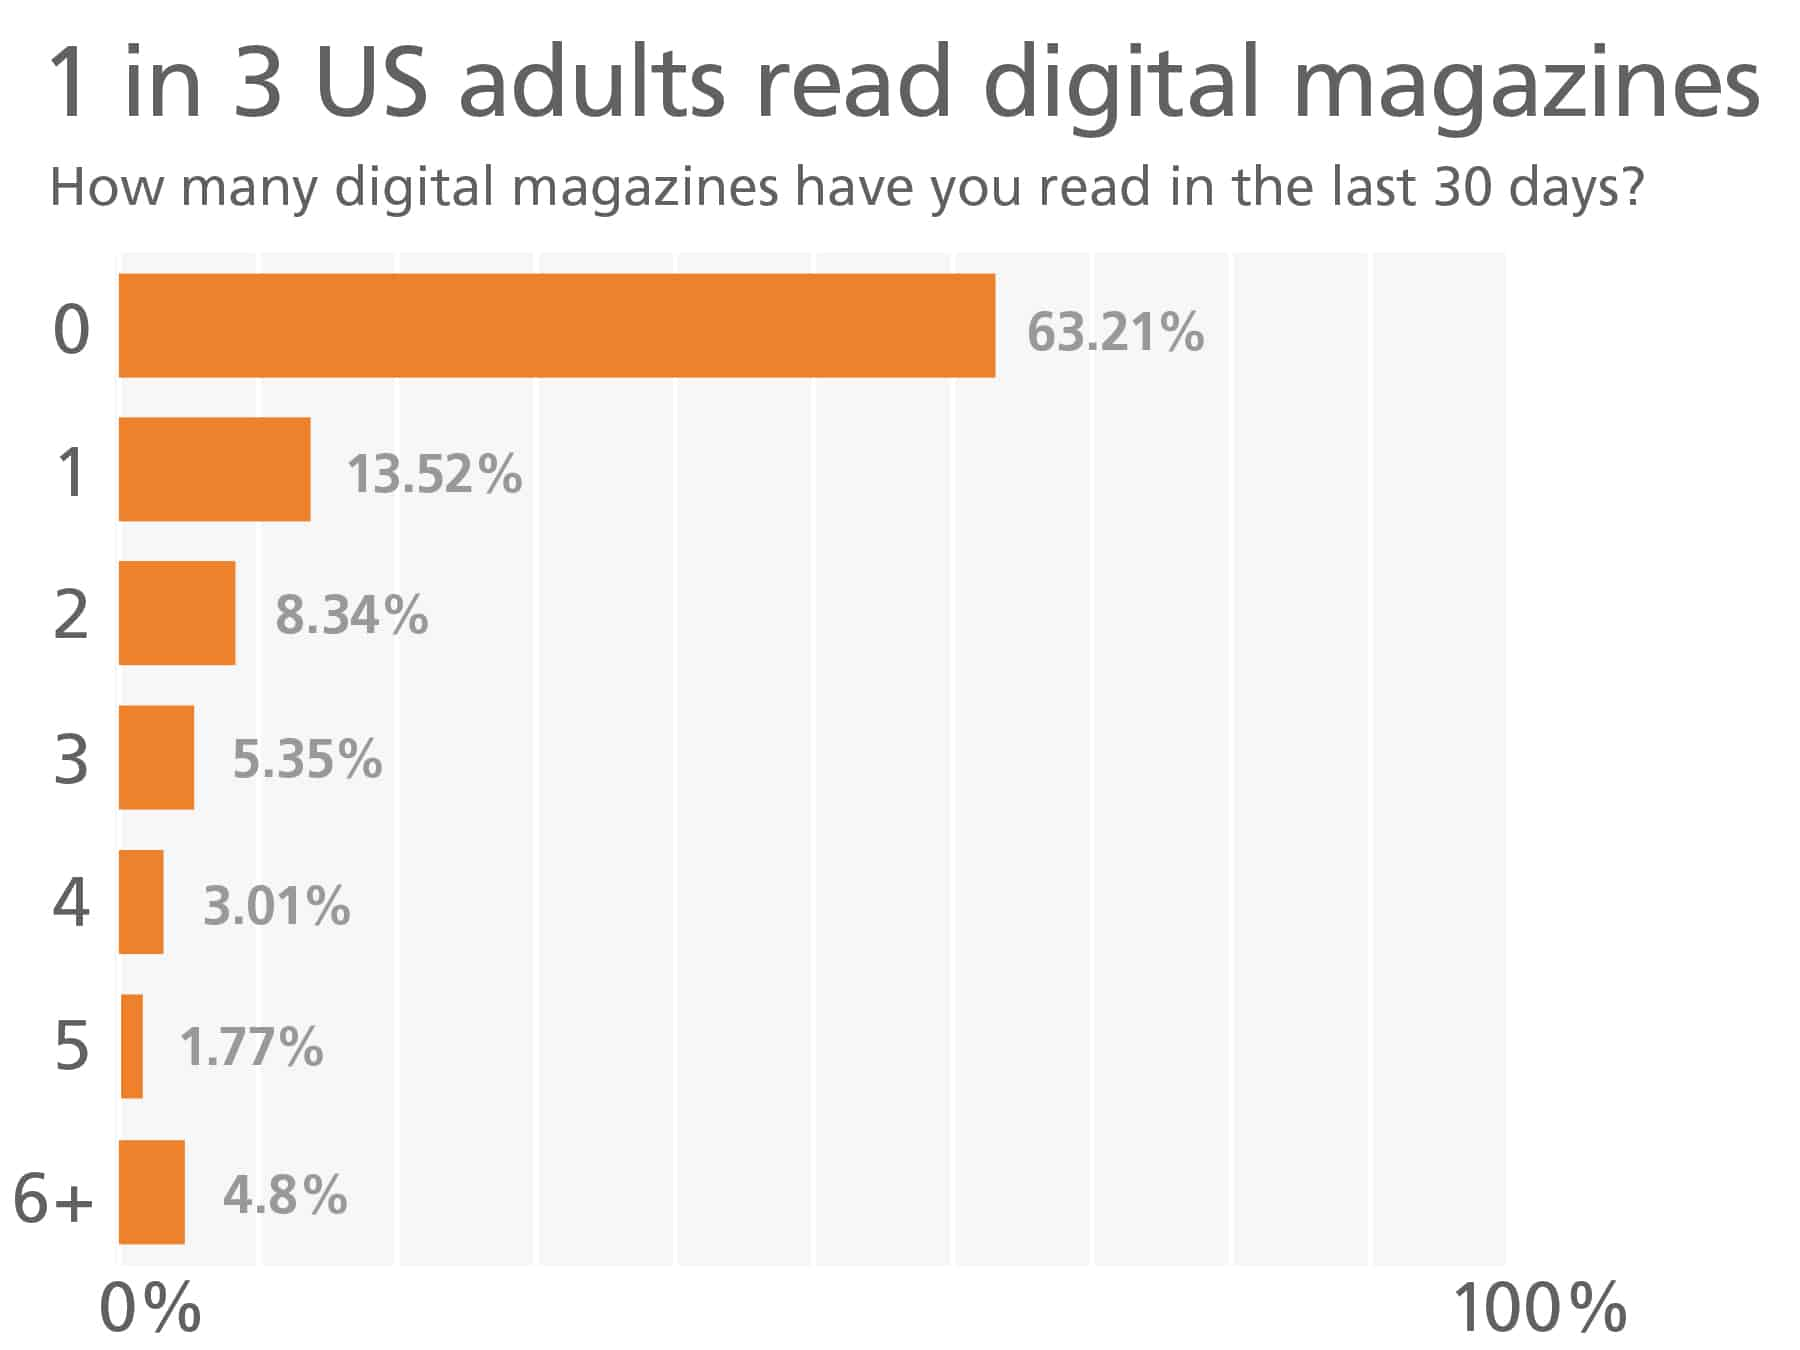 1 in 3 U.S. adults read digital magazines